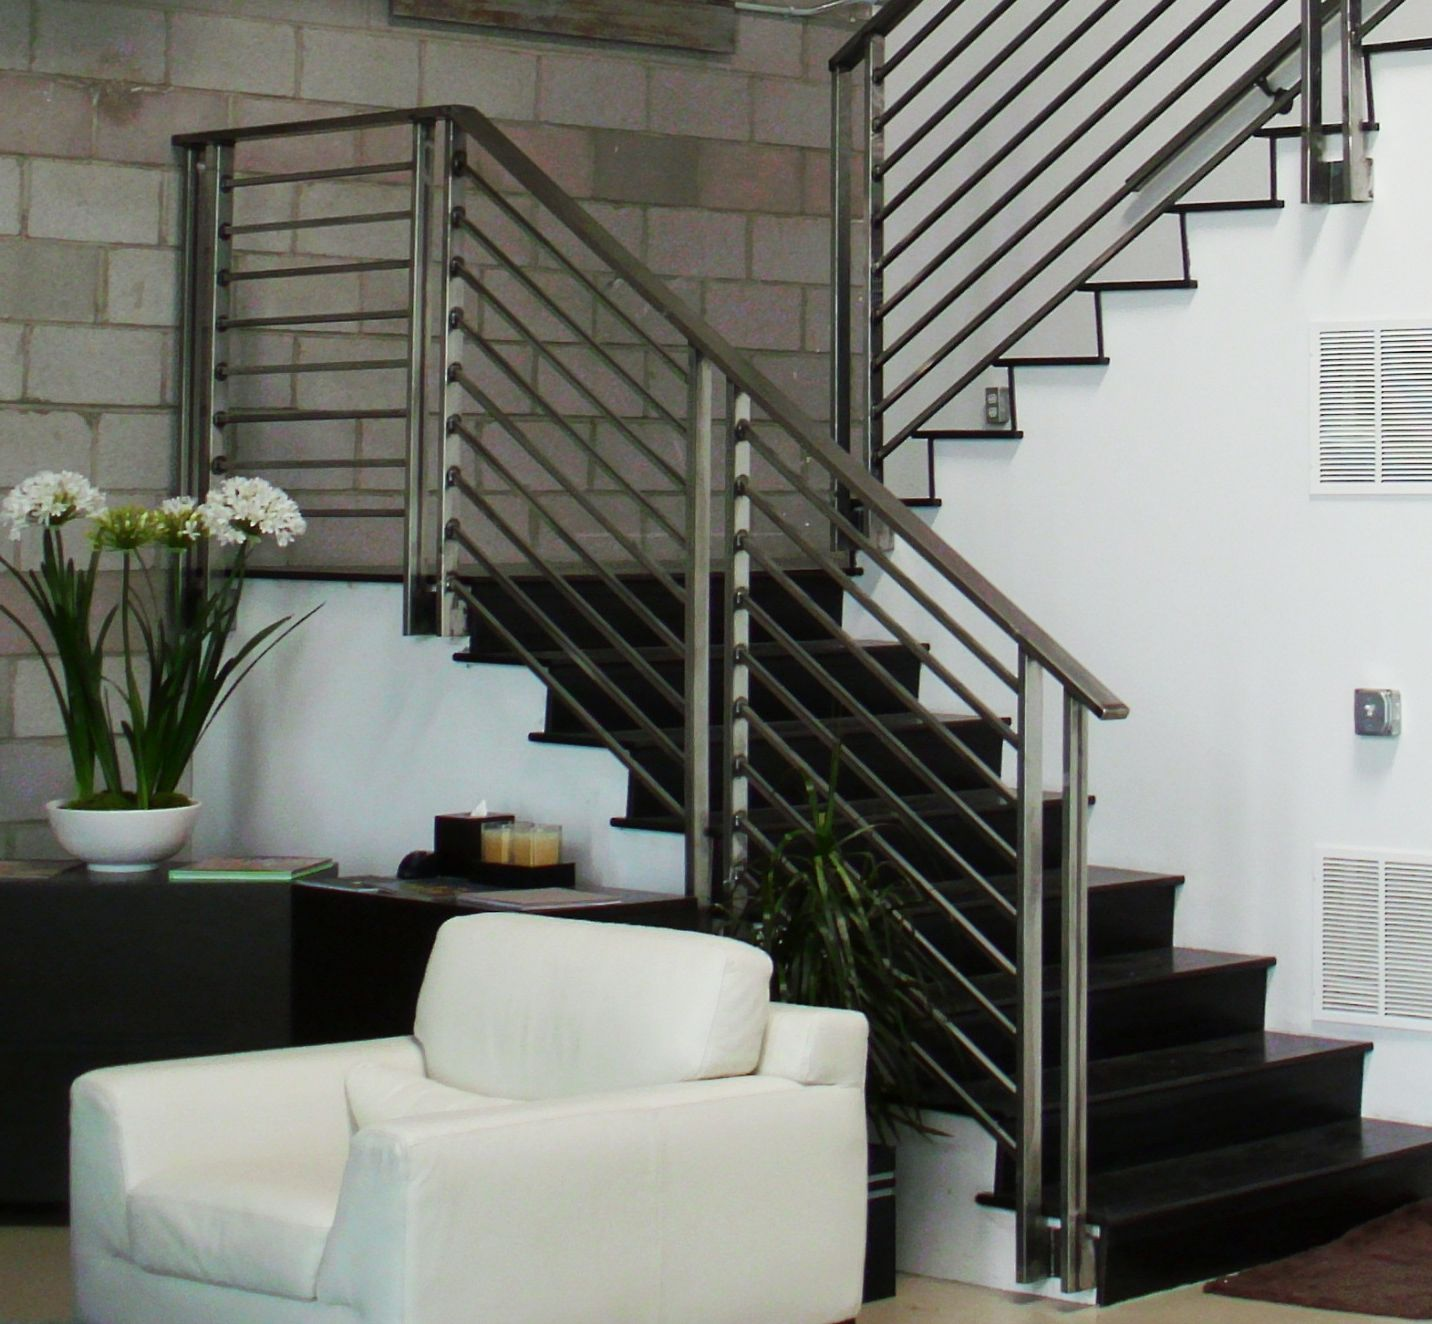 Charming Stair, : Creative Picture Of Home Interior Design And Decoration Using  Stainless Steel Aluminium Staircase Railing Including Stainless Steel  Staircase ...